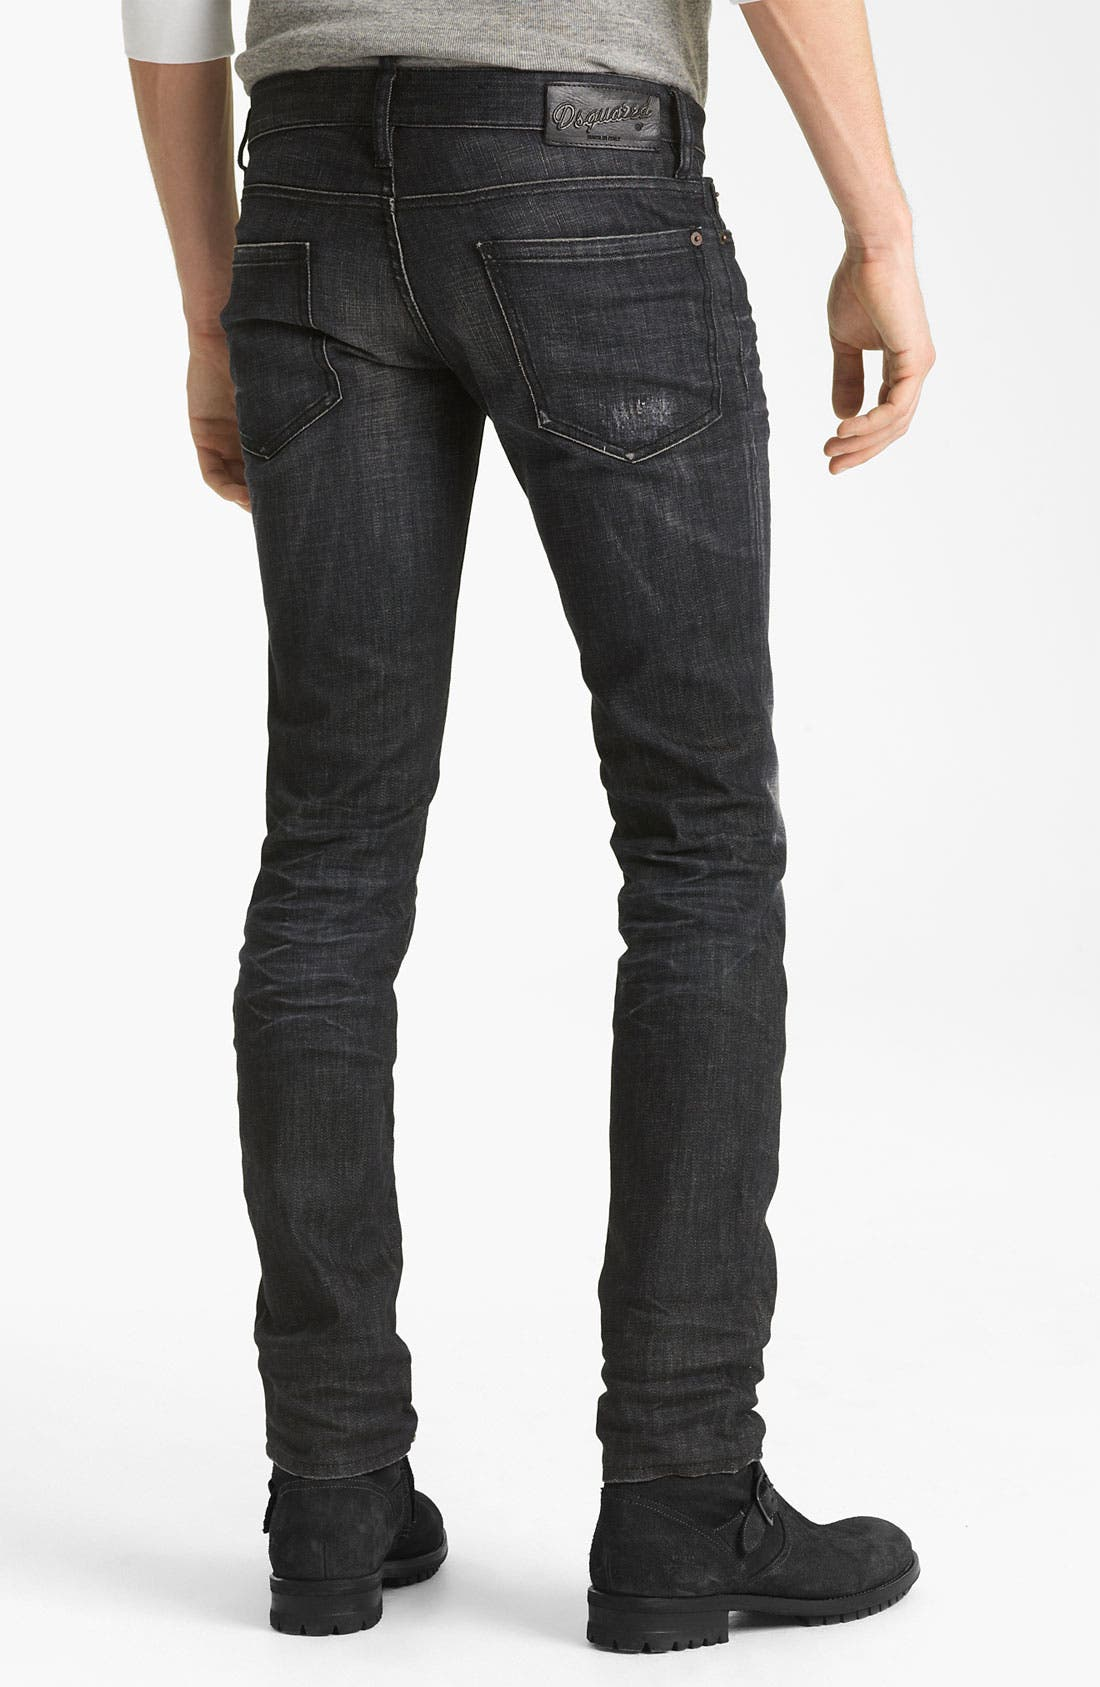 Alternate Image 1 Selected - Dsquared2 Slim Fit Jeans (Black Night)